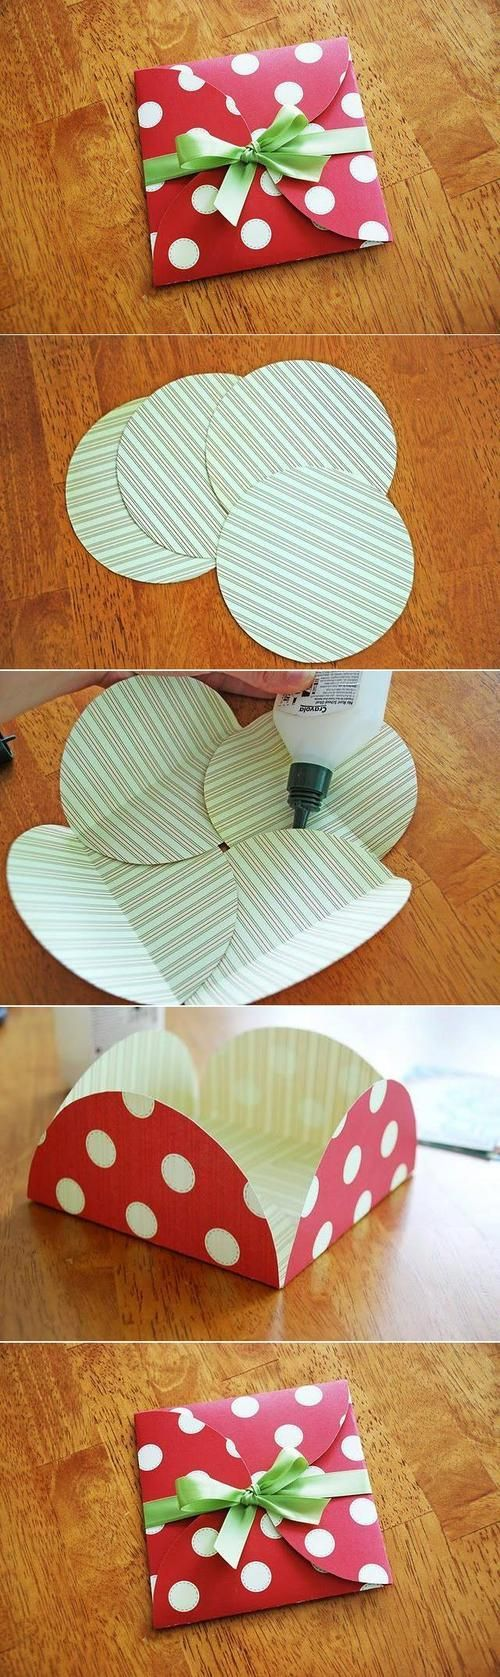 DIY: Special wrapping